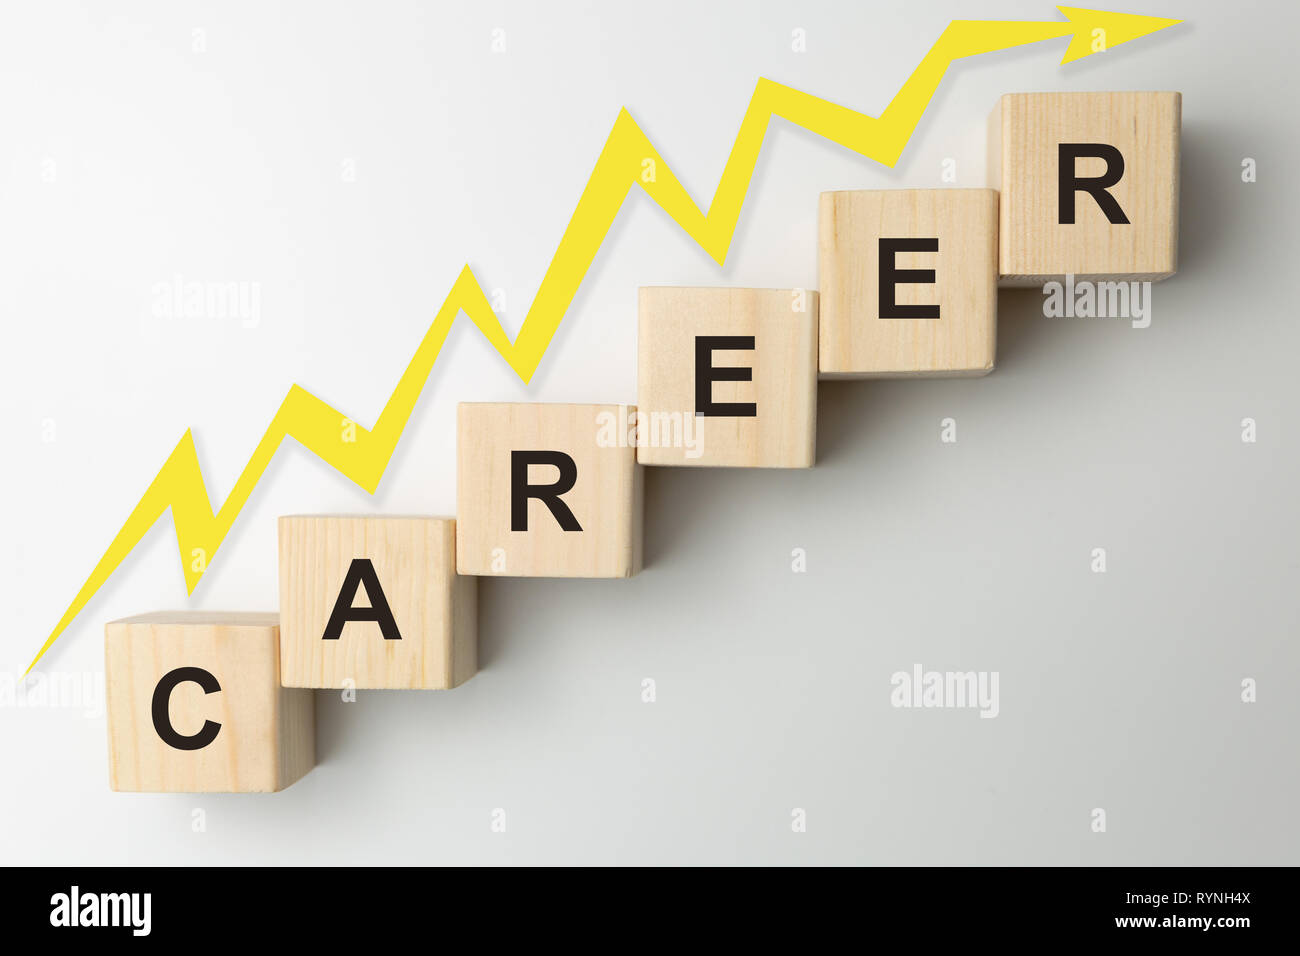 Wooden blocks arranged in stair shape with the word CAREER. Arrow pointing up - Stock Image